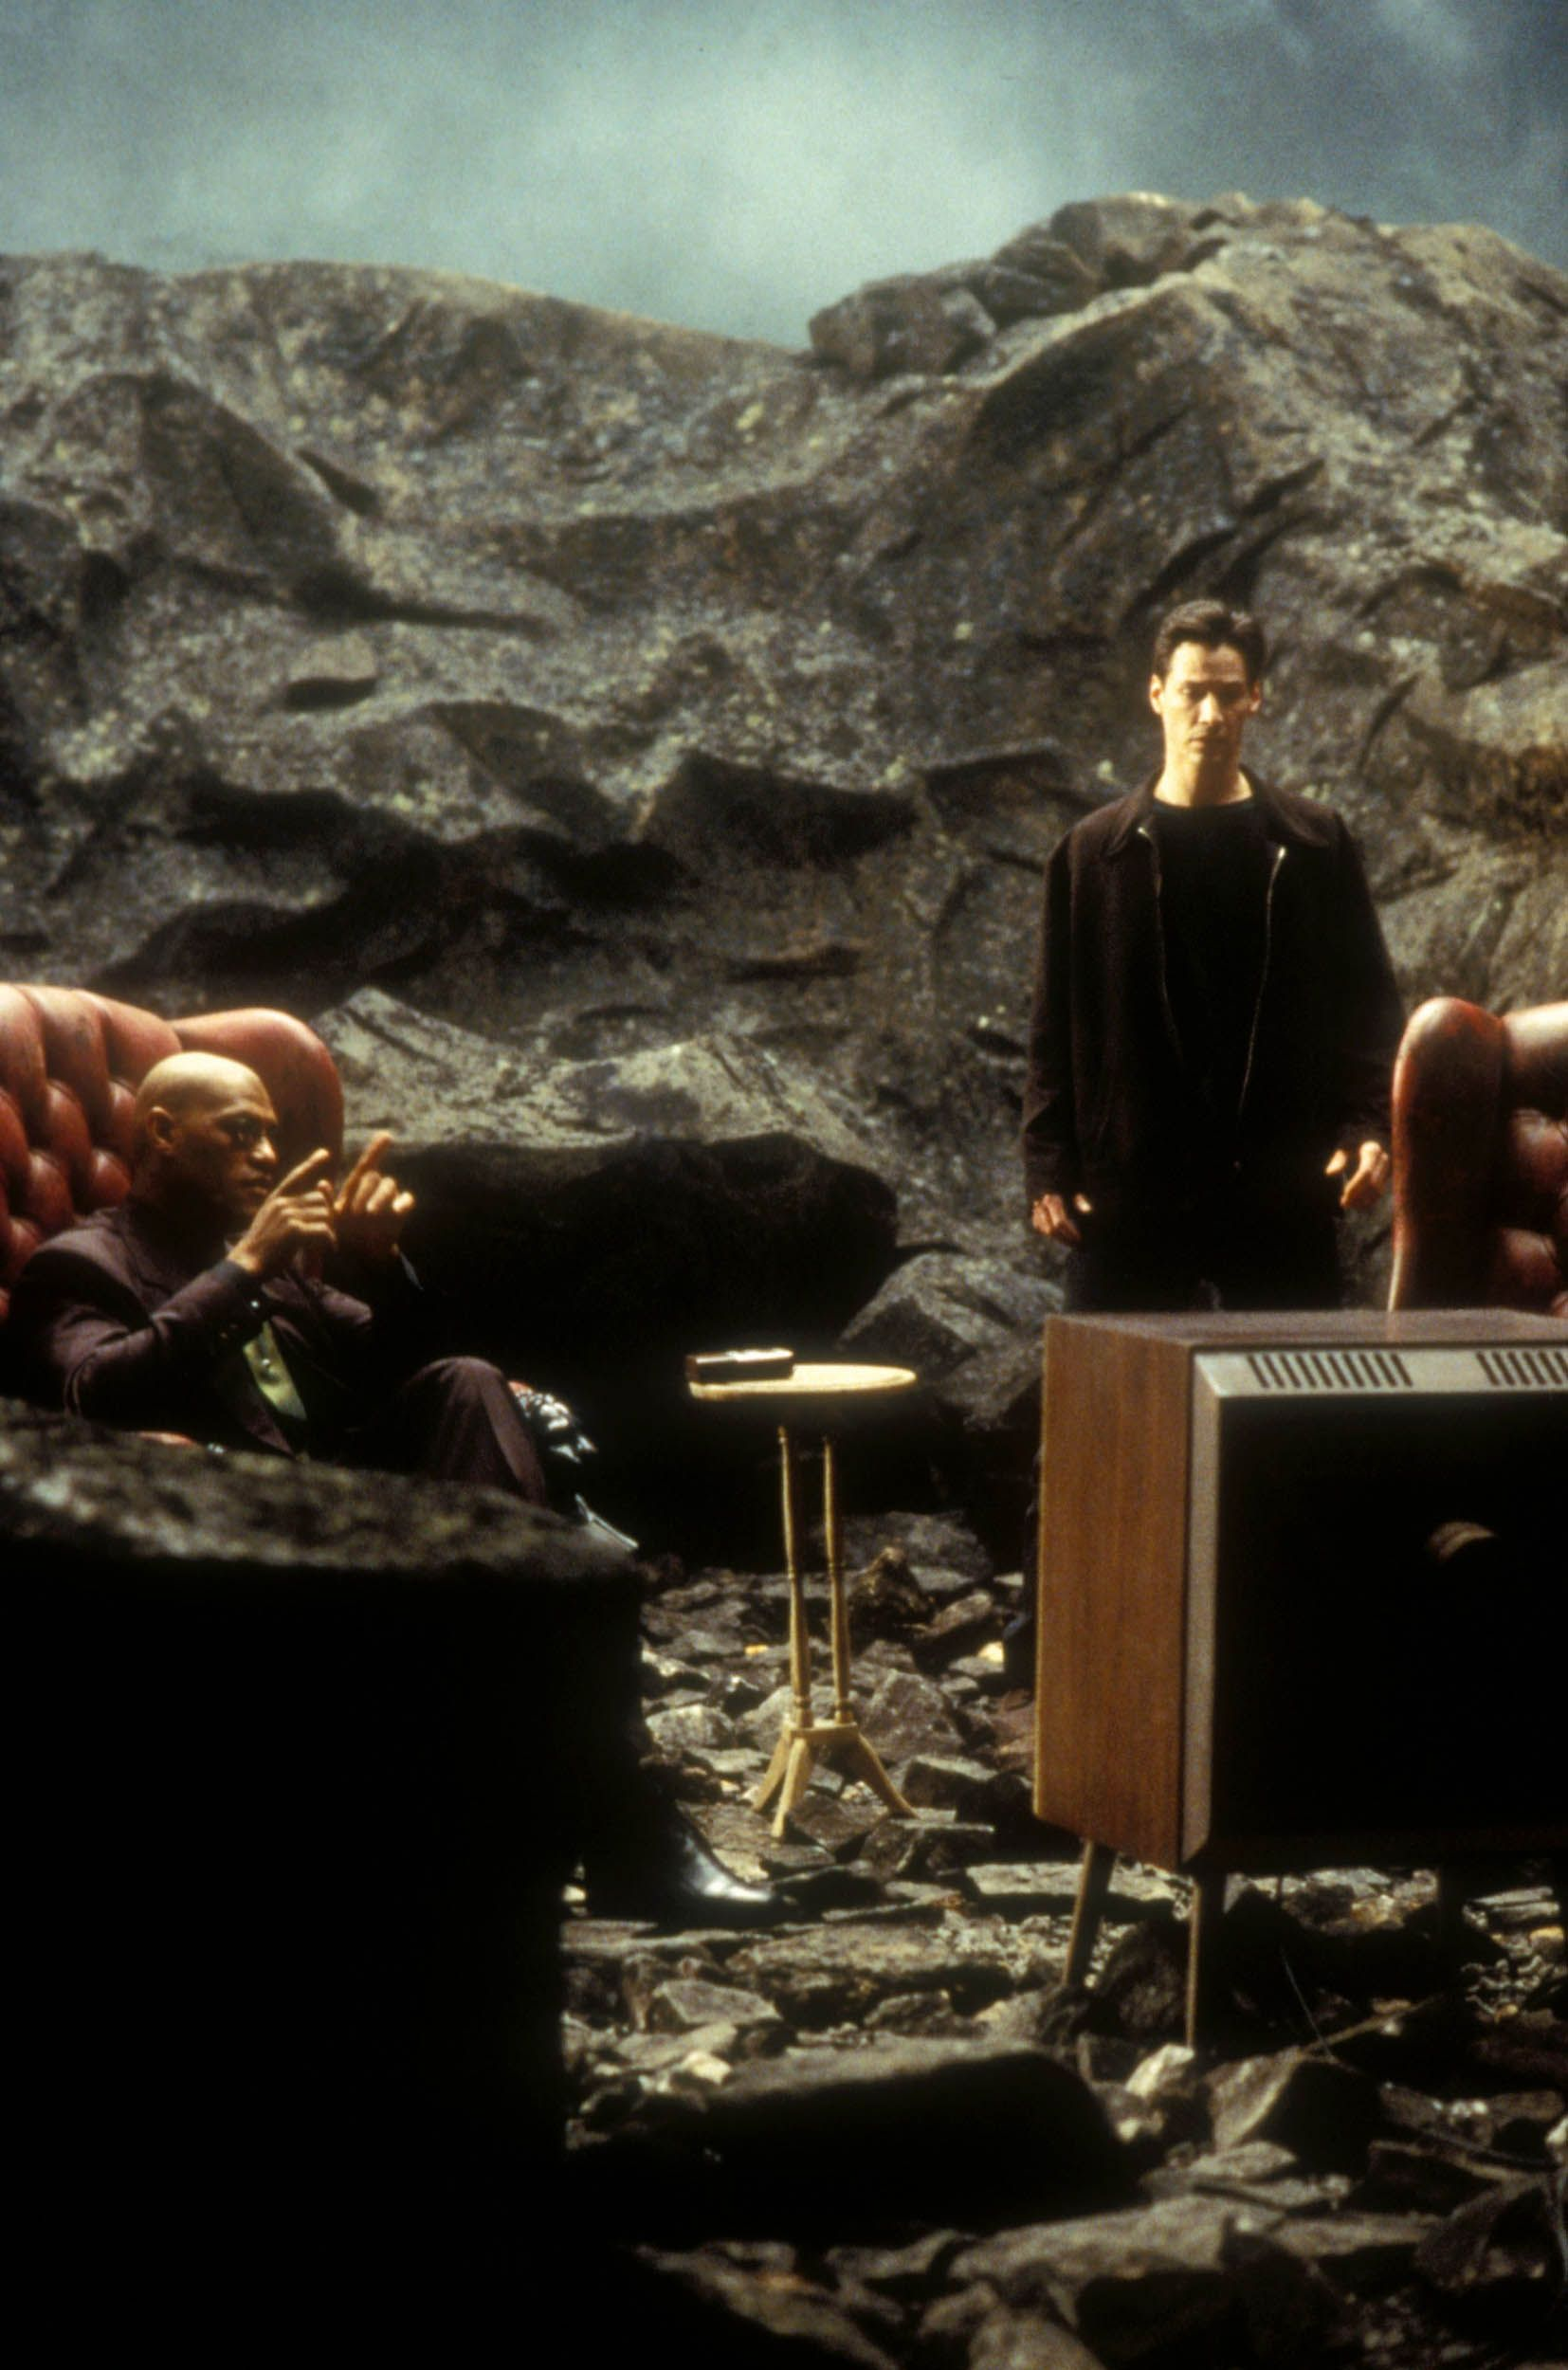 Laurence Fishburne and Keanu Reeves in the 1999 film The Matrix.